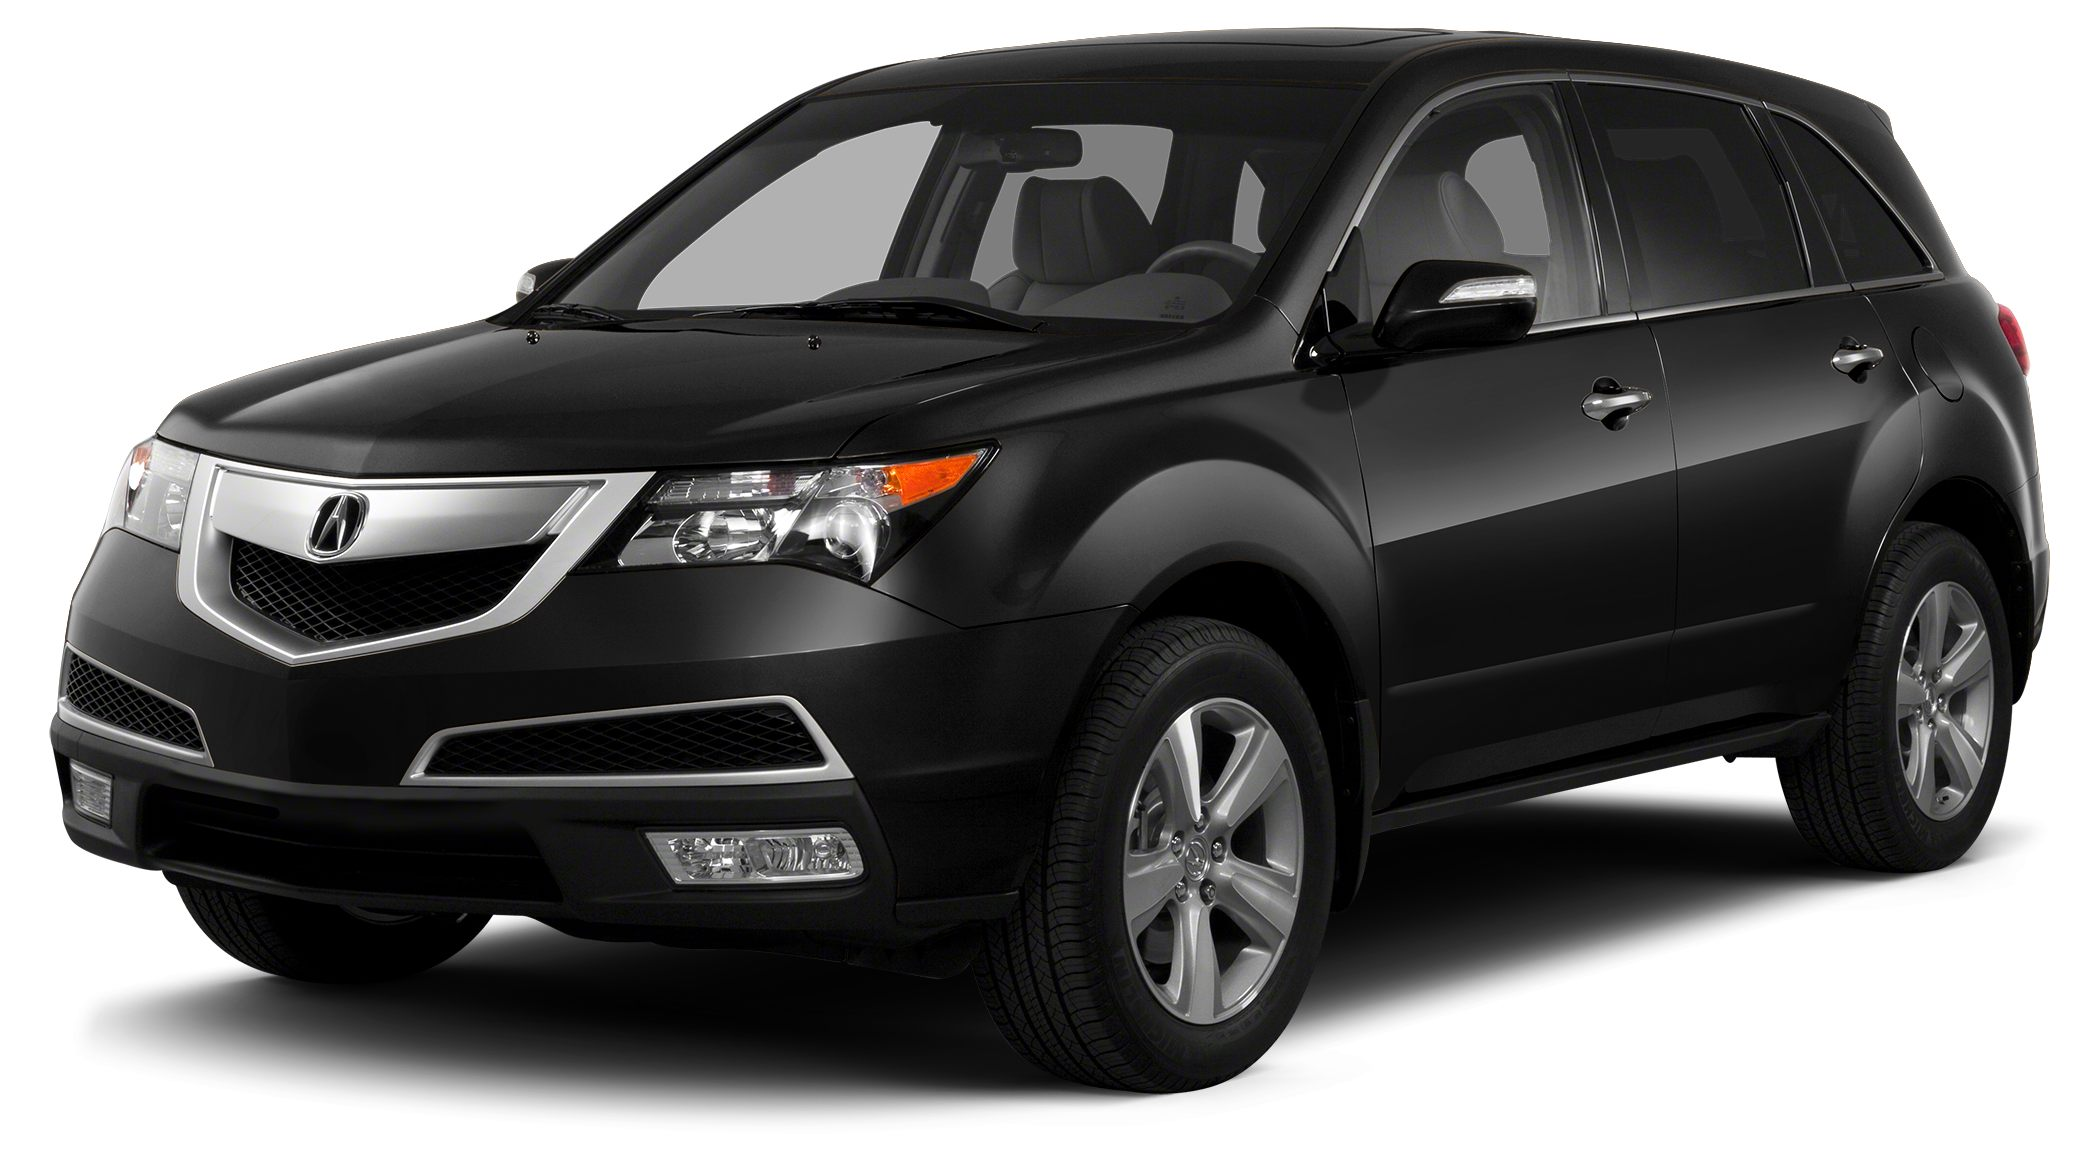 2013 Acura MDX 37 Technology Were here to make your shopping experience as pleasant and hassle f